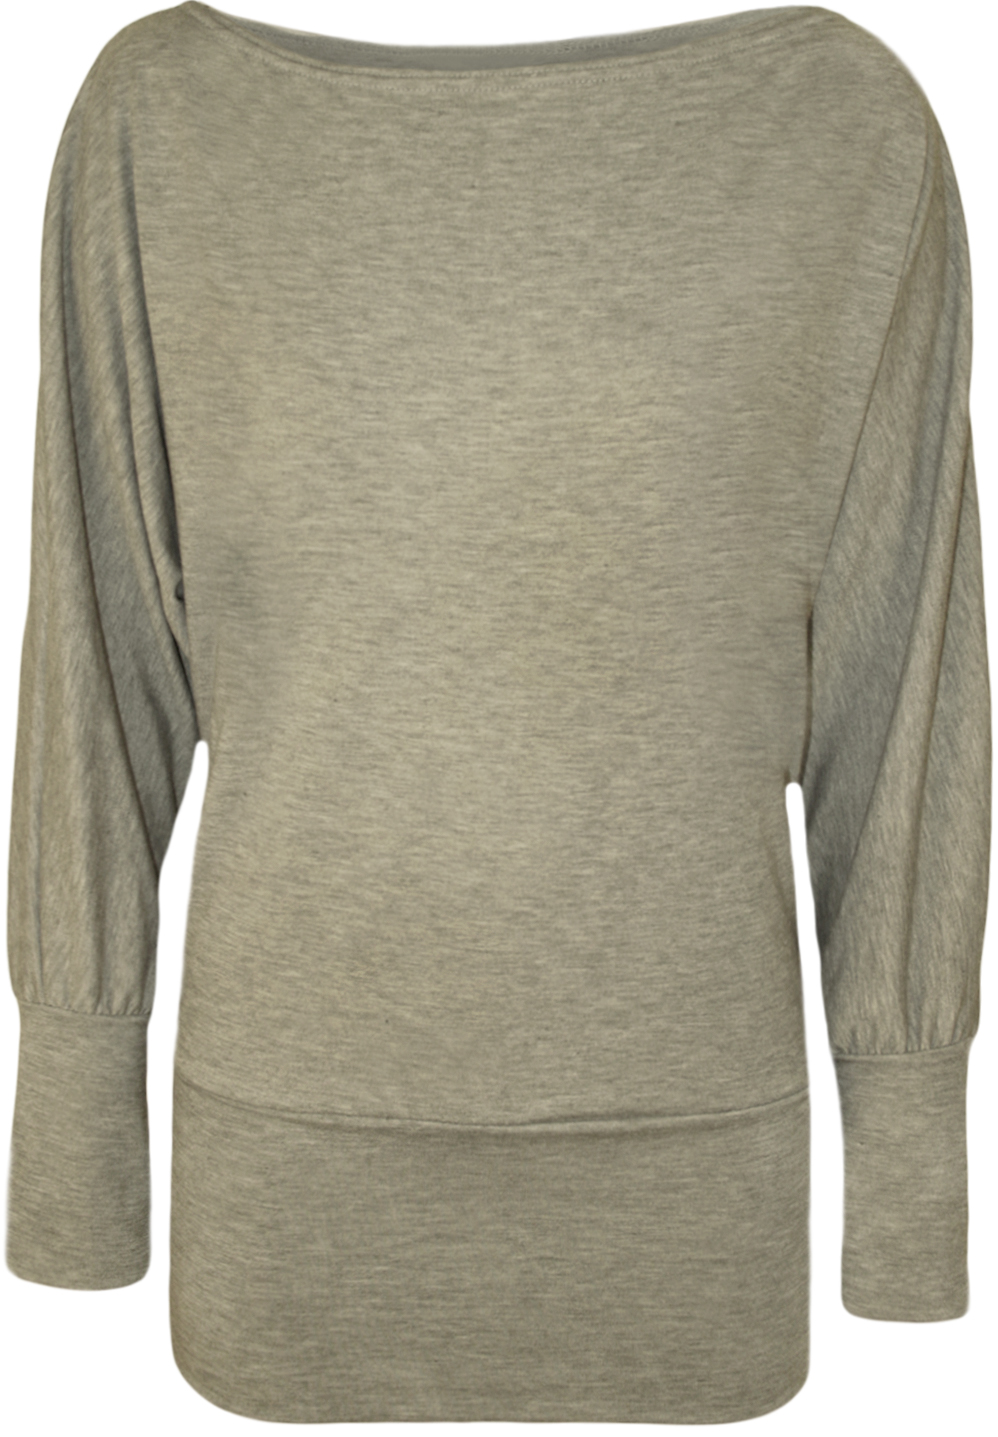 New-Ladies-Plain-Long-Sleeved-Batwing-T-Shirt-Womens-Stretch-Tunic-Top-Size-8-20